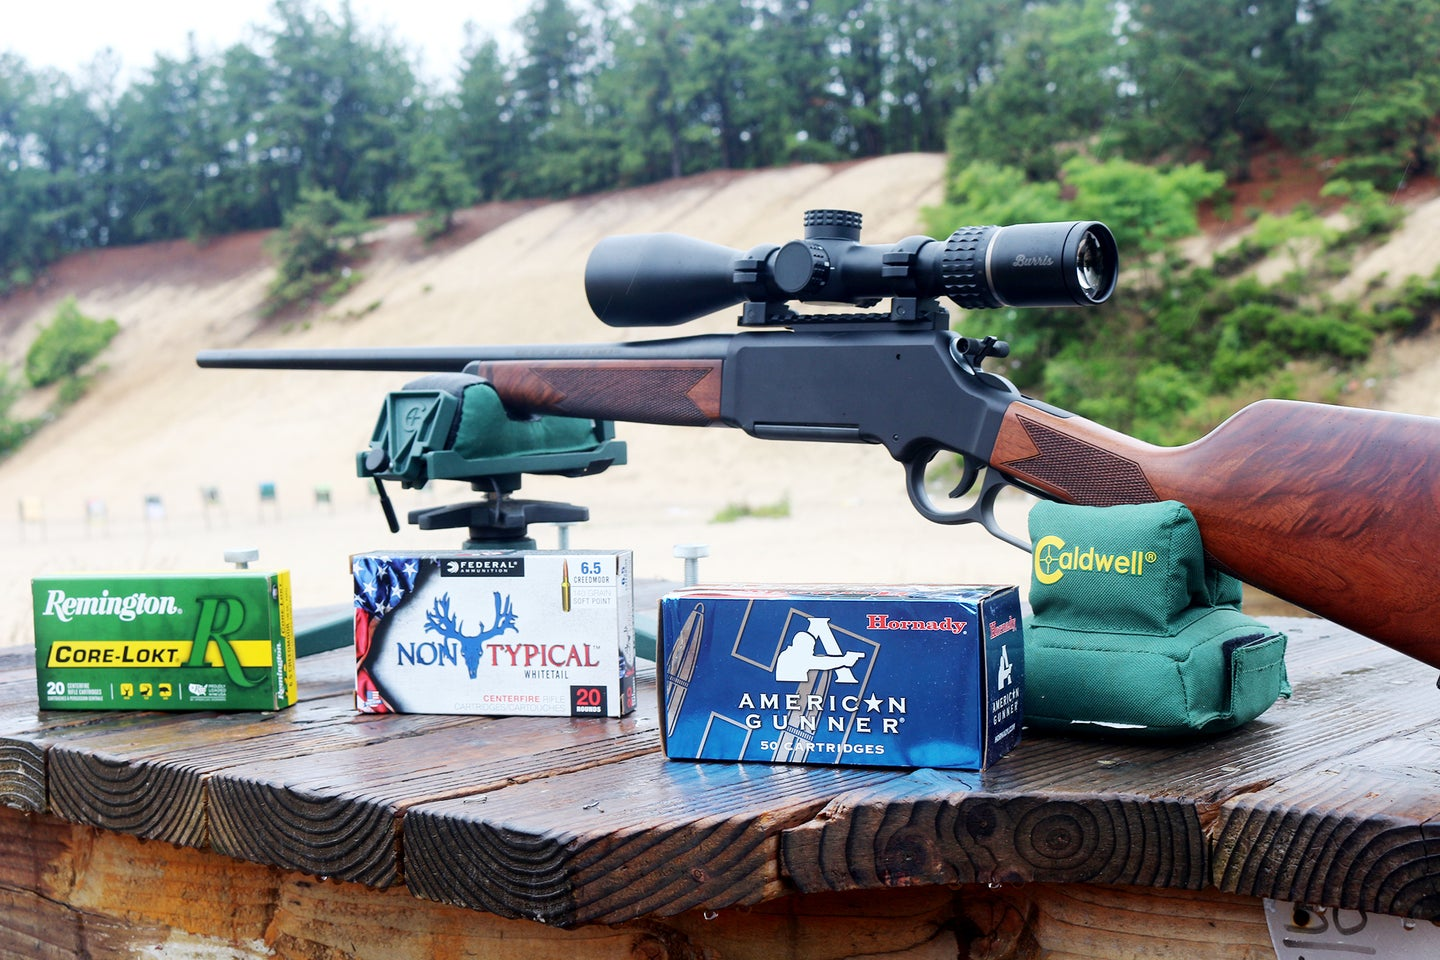 The Henry Long Ranger with various 6.5 Creedmoor ammunition